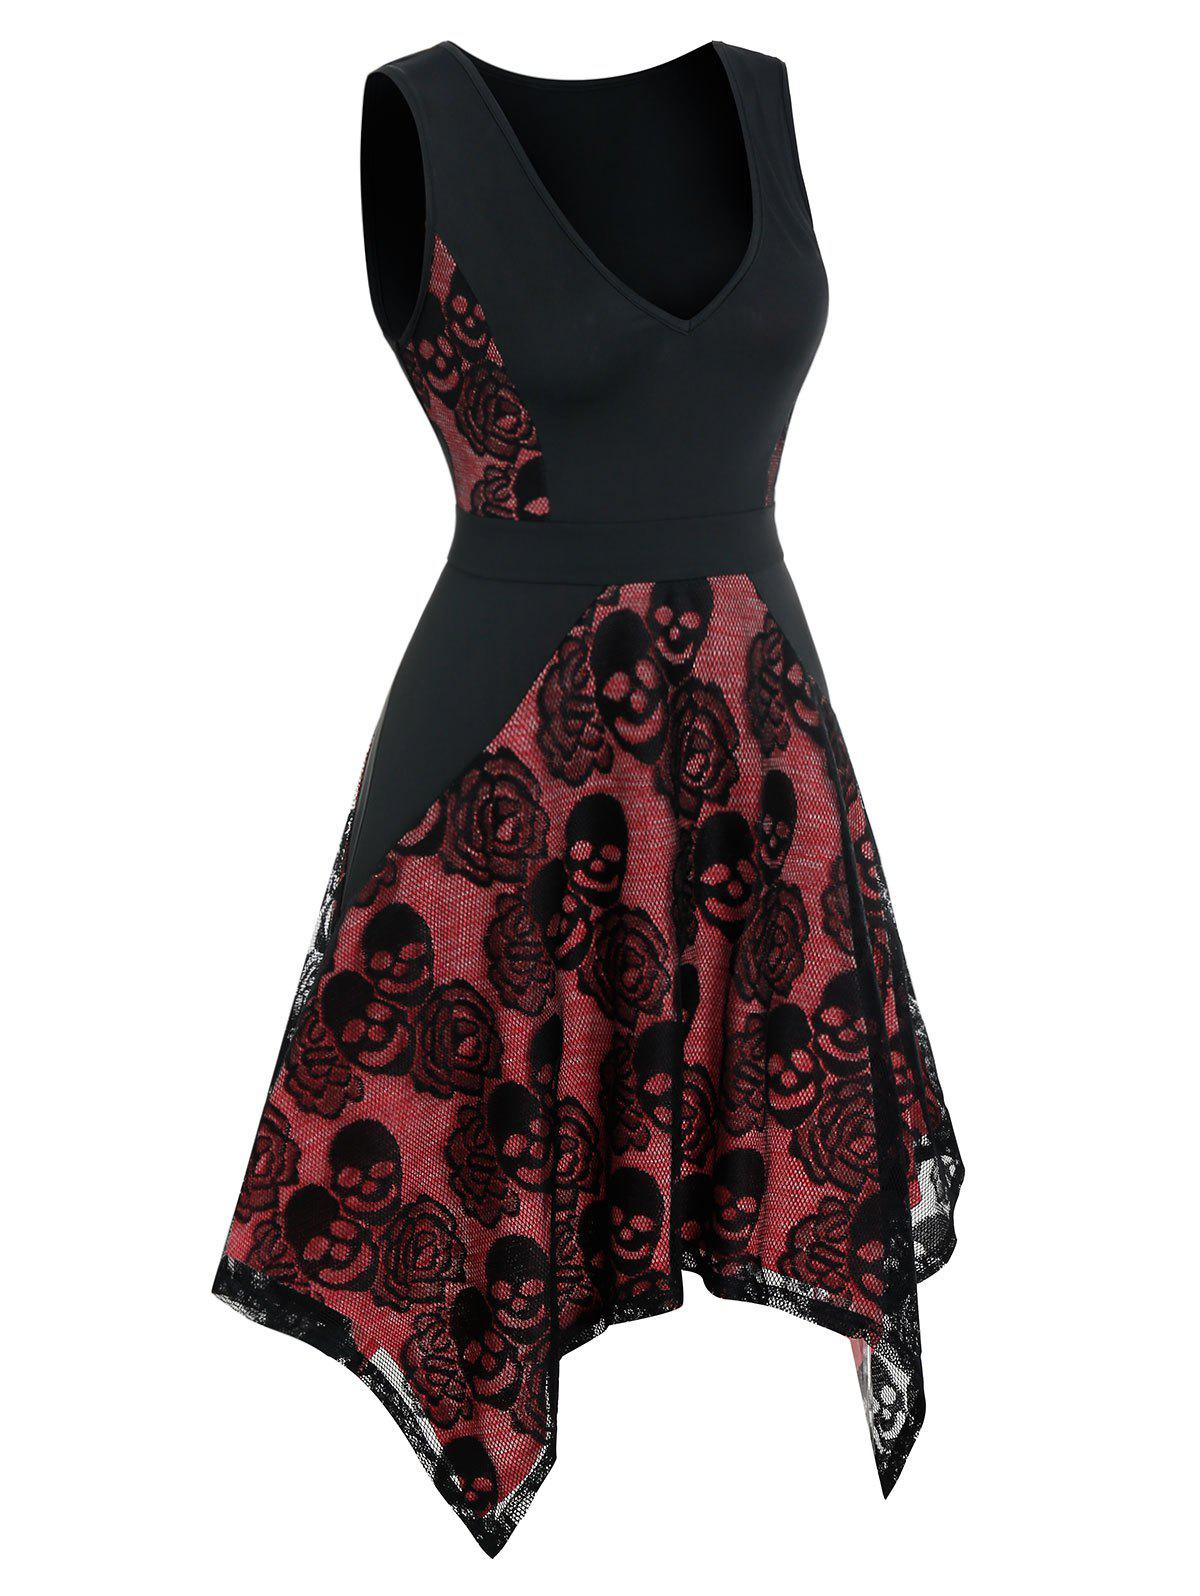 Floral Skull Lace Asymmetrical Sleeveless Dress - multicolor A L